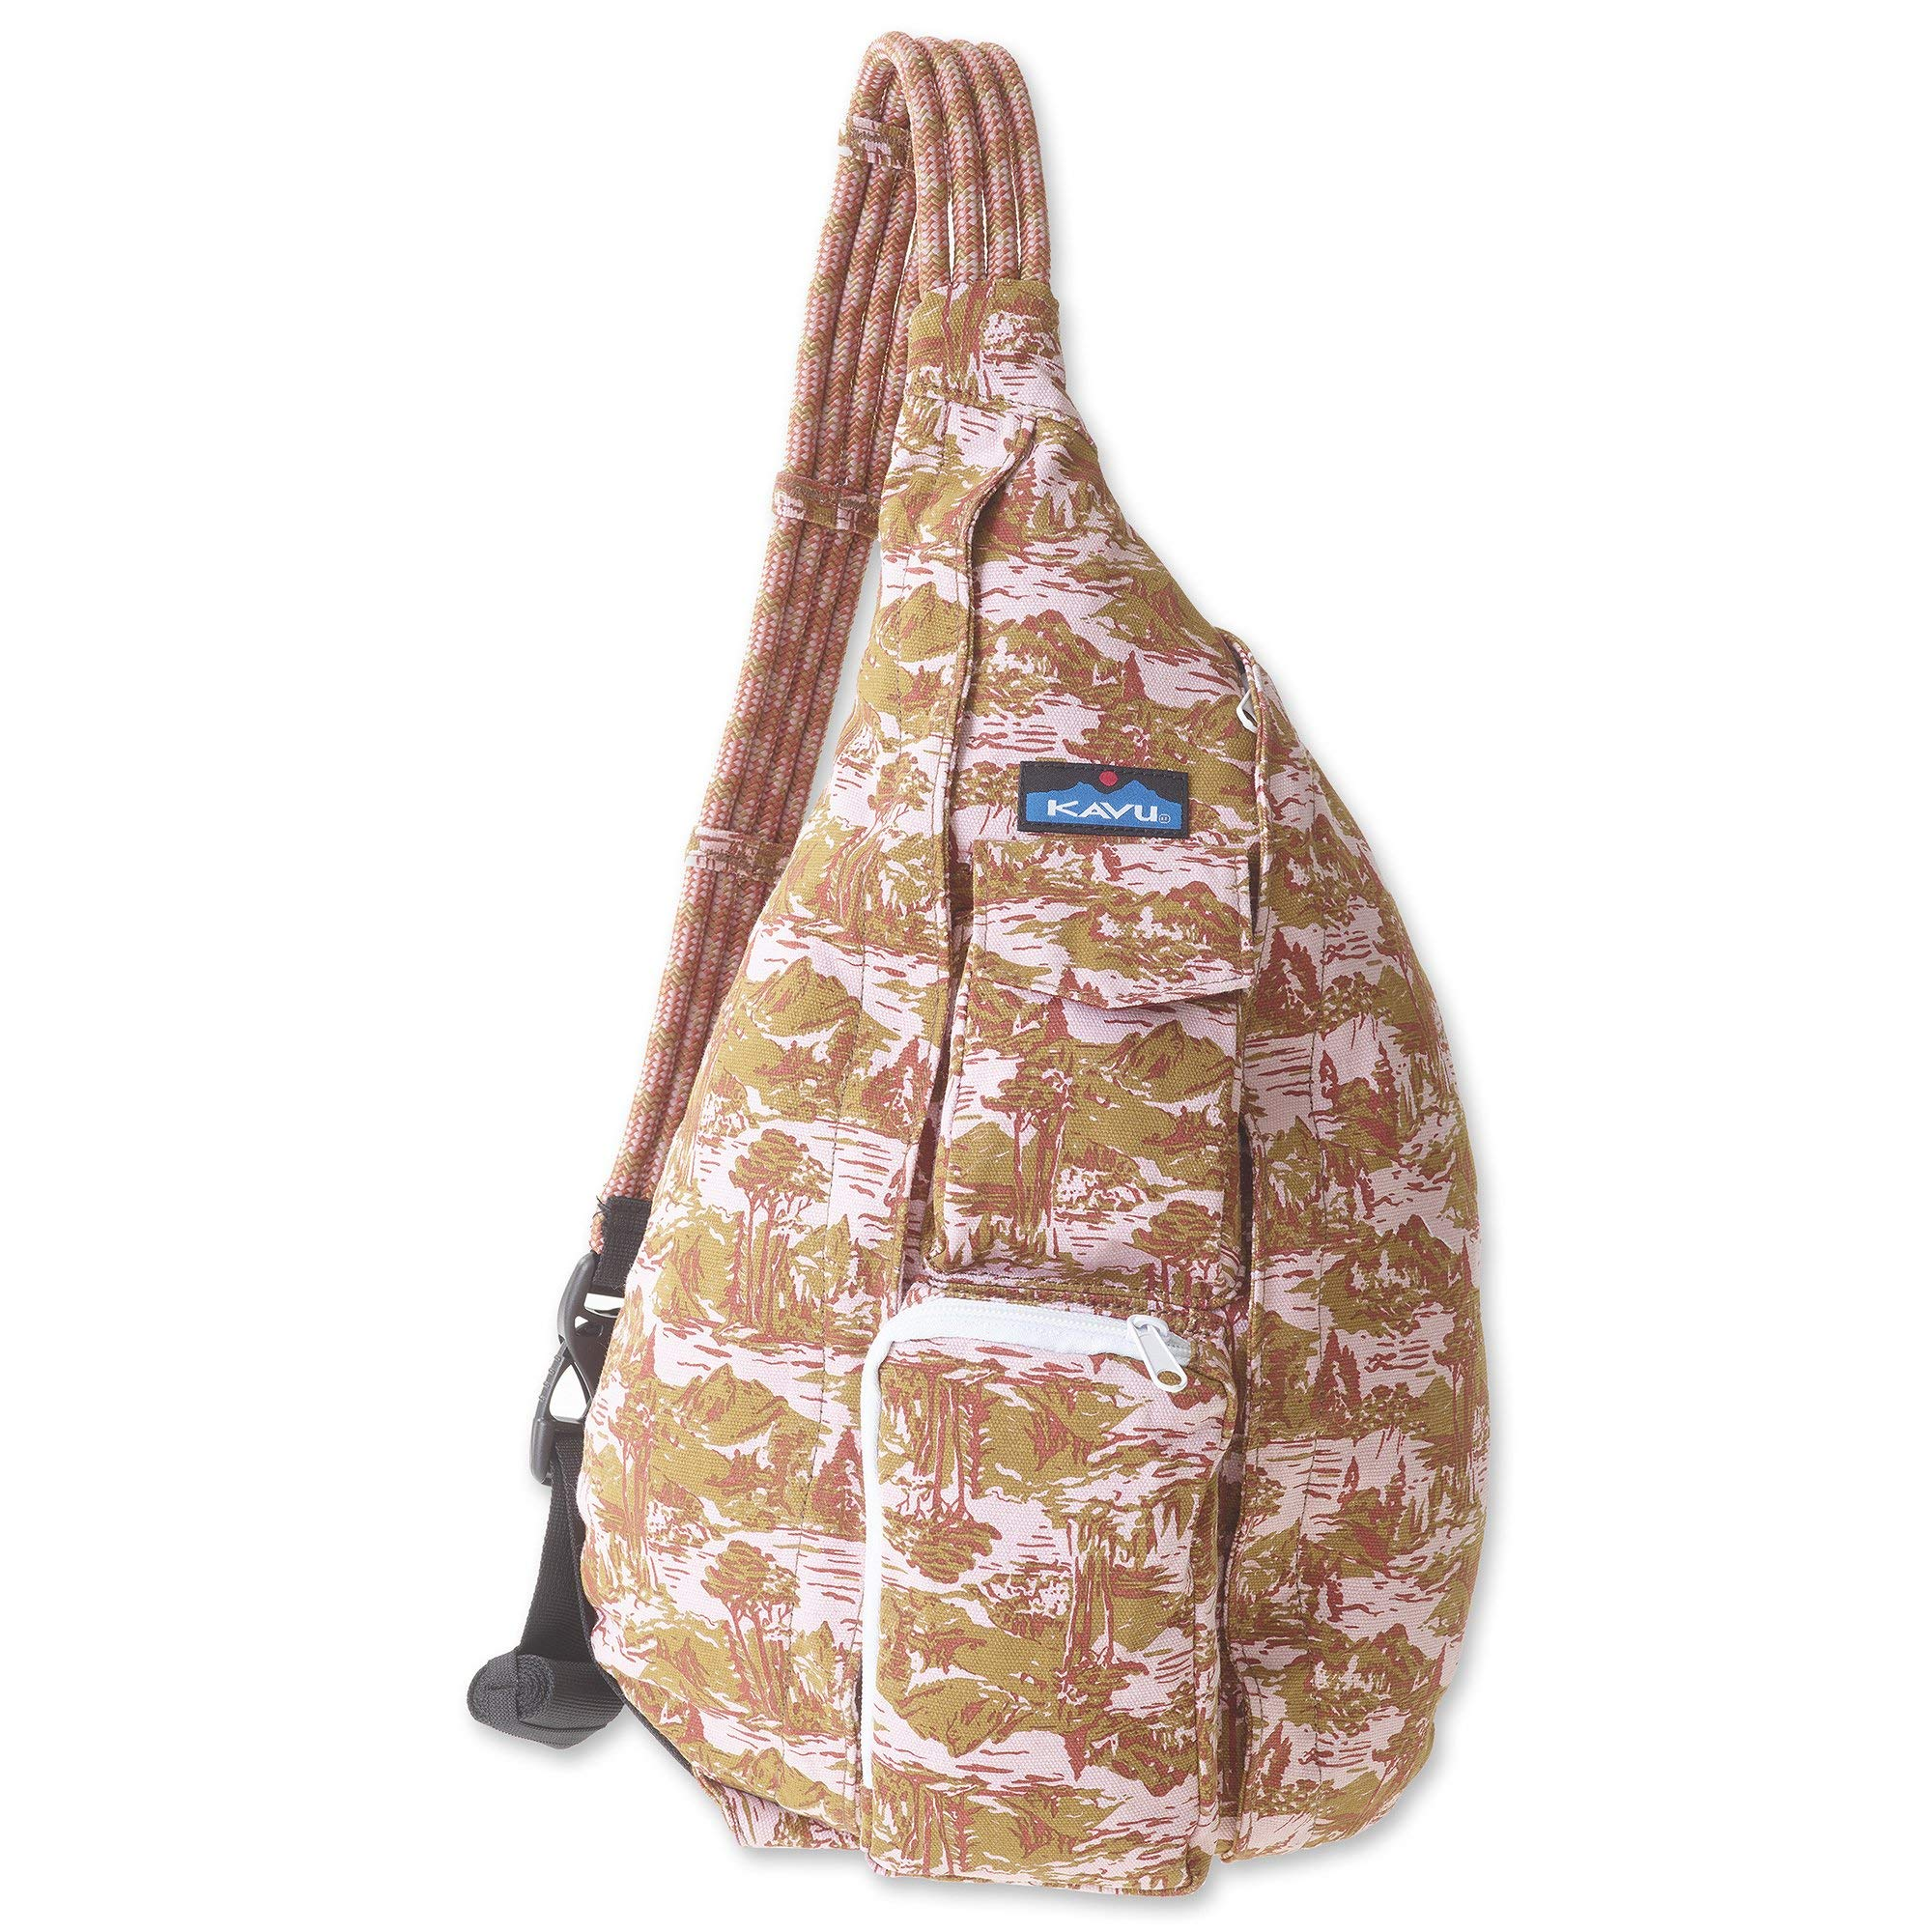 KAVU Rope Bag - Sling Pack for Hiking, Camping, and Commuting - Blush Landscape